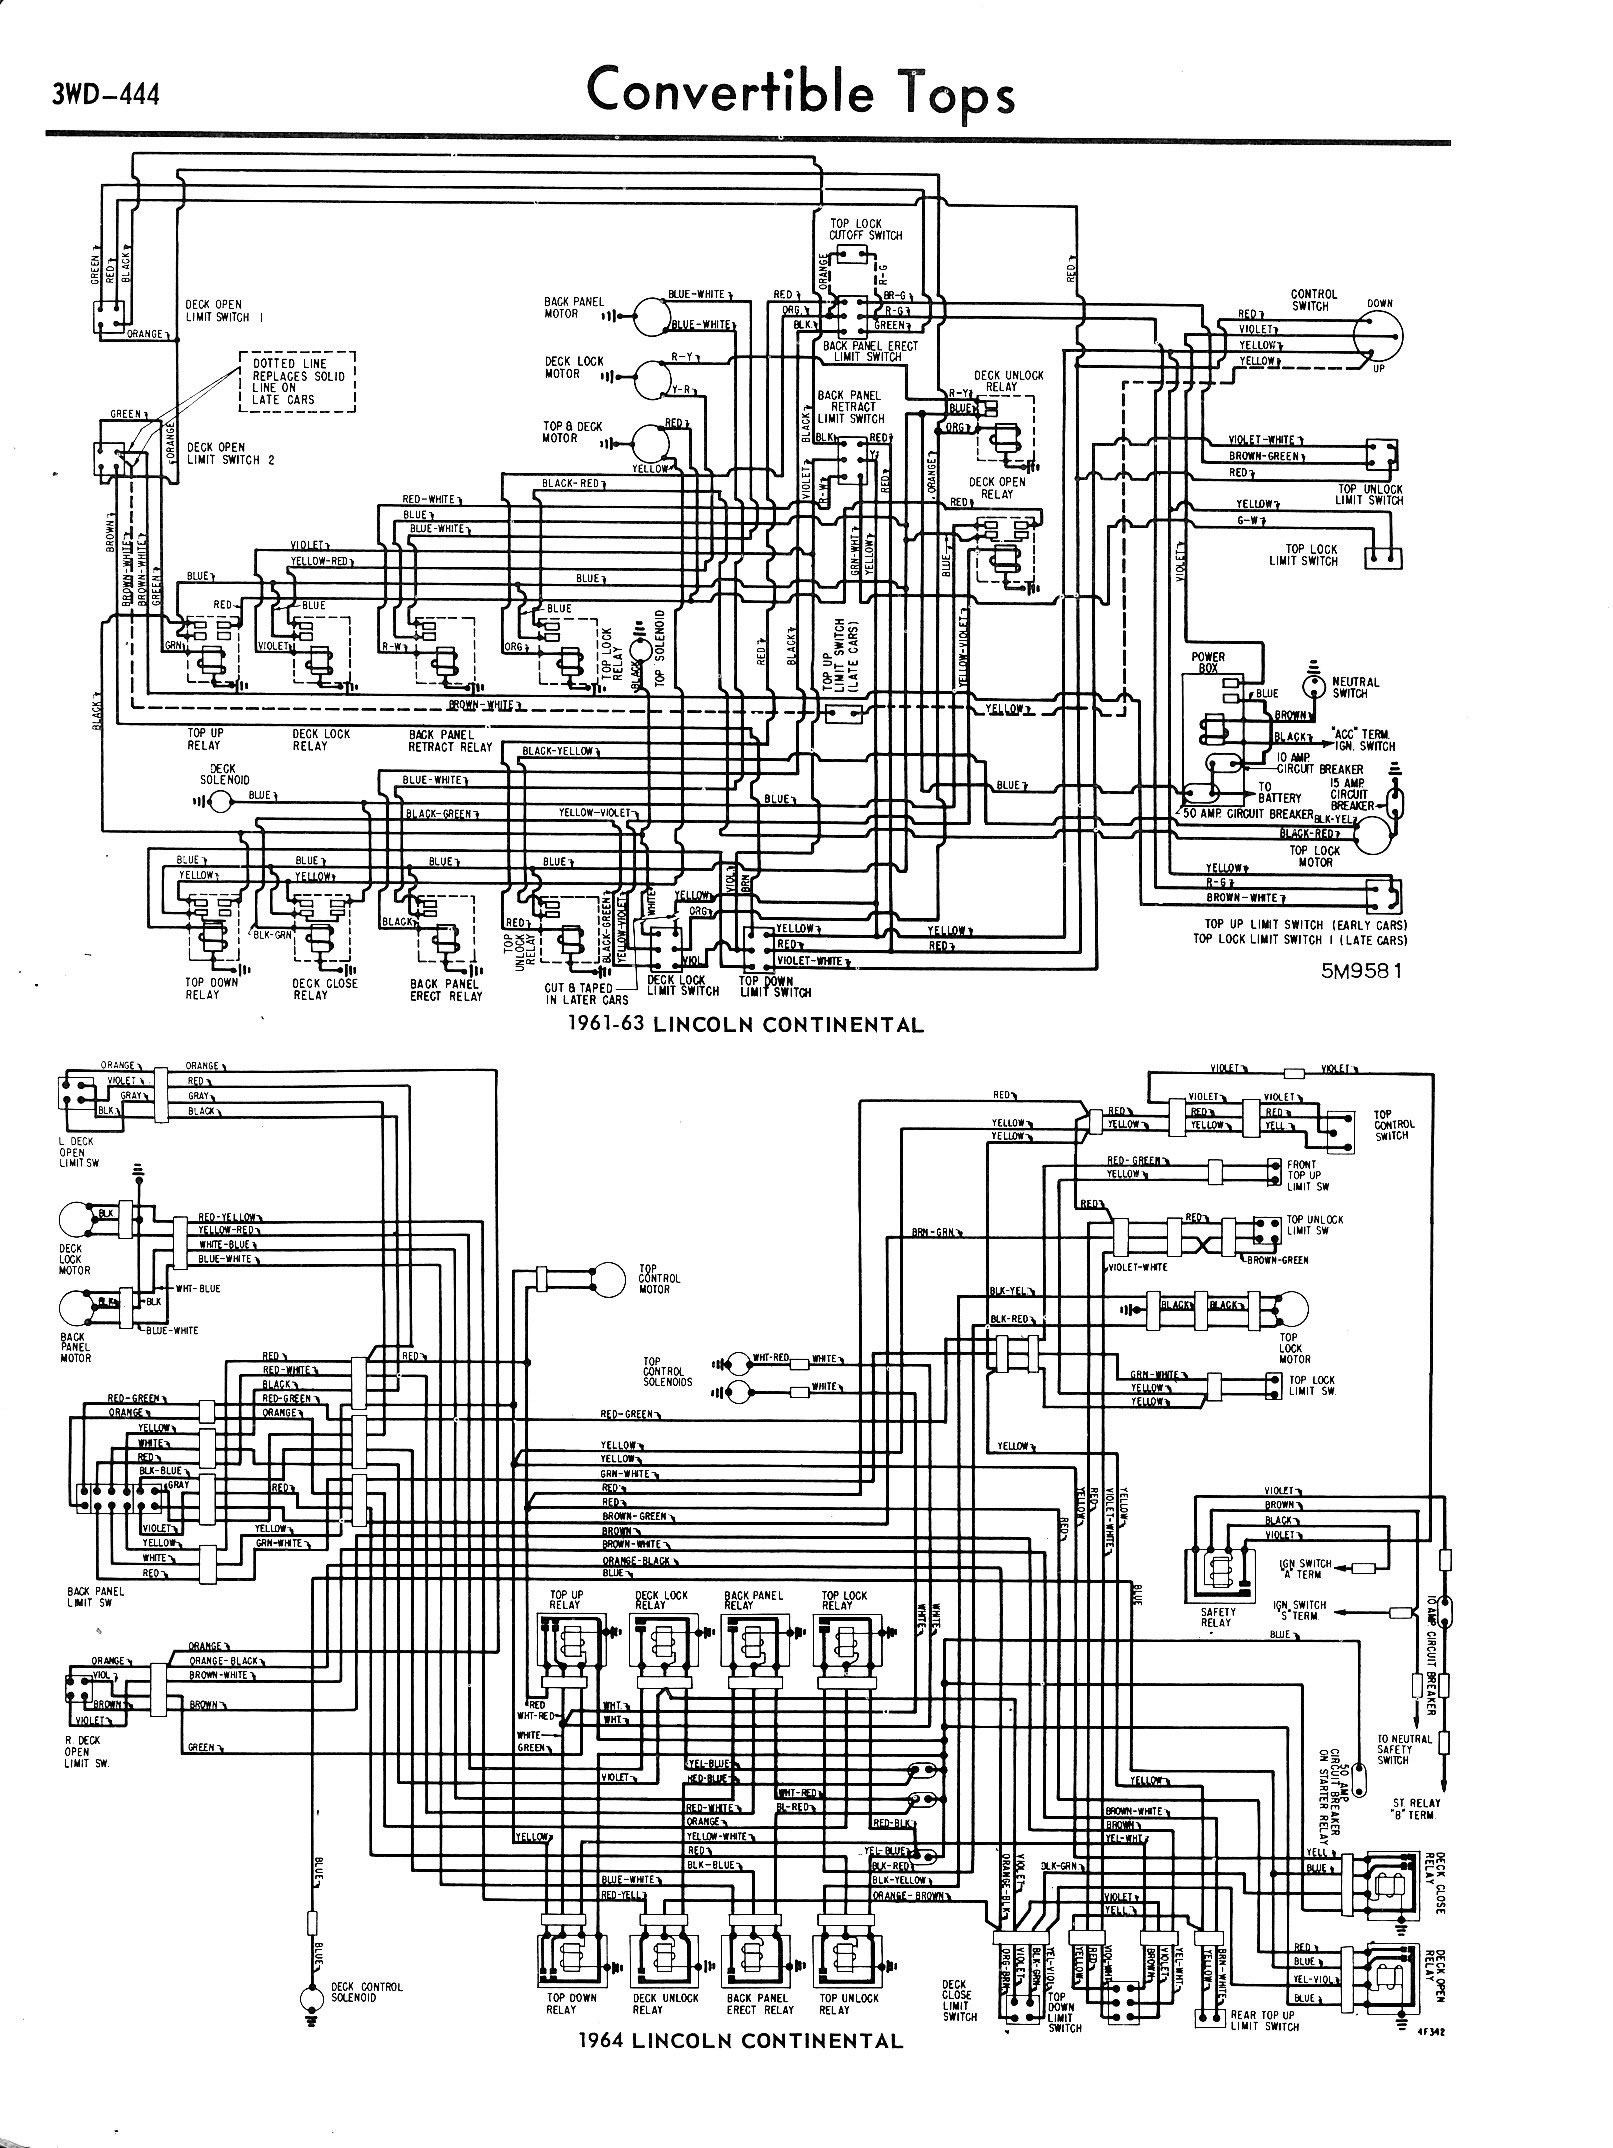 C4 And Camaro Sensor And Relay Switch Locations And Info additionally 9097CH05 Fuel Pump in addition Amd 71 74 E Body 71 74 B Body Full Oe Style Front Floor Pan P 817 moreover 58k6s Chevrolet Suburban 1500 Told Brake Light Switch furthermore Fuel Cell Sending Unit Wiring Diagram. on truck fuel gauge wiring diagram on chevy